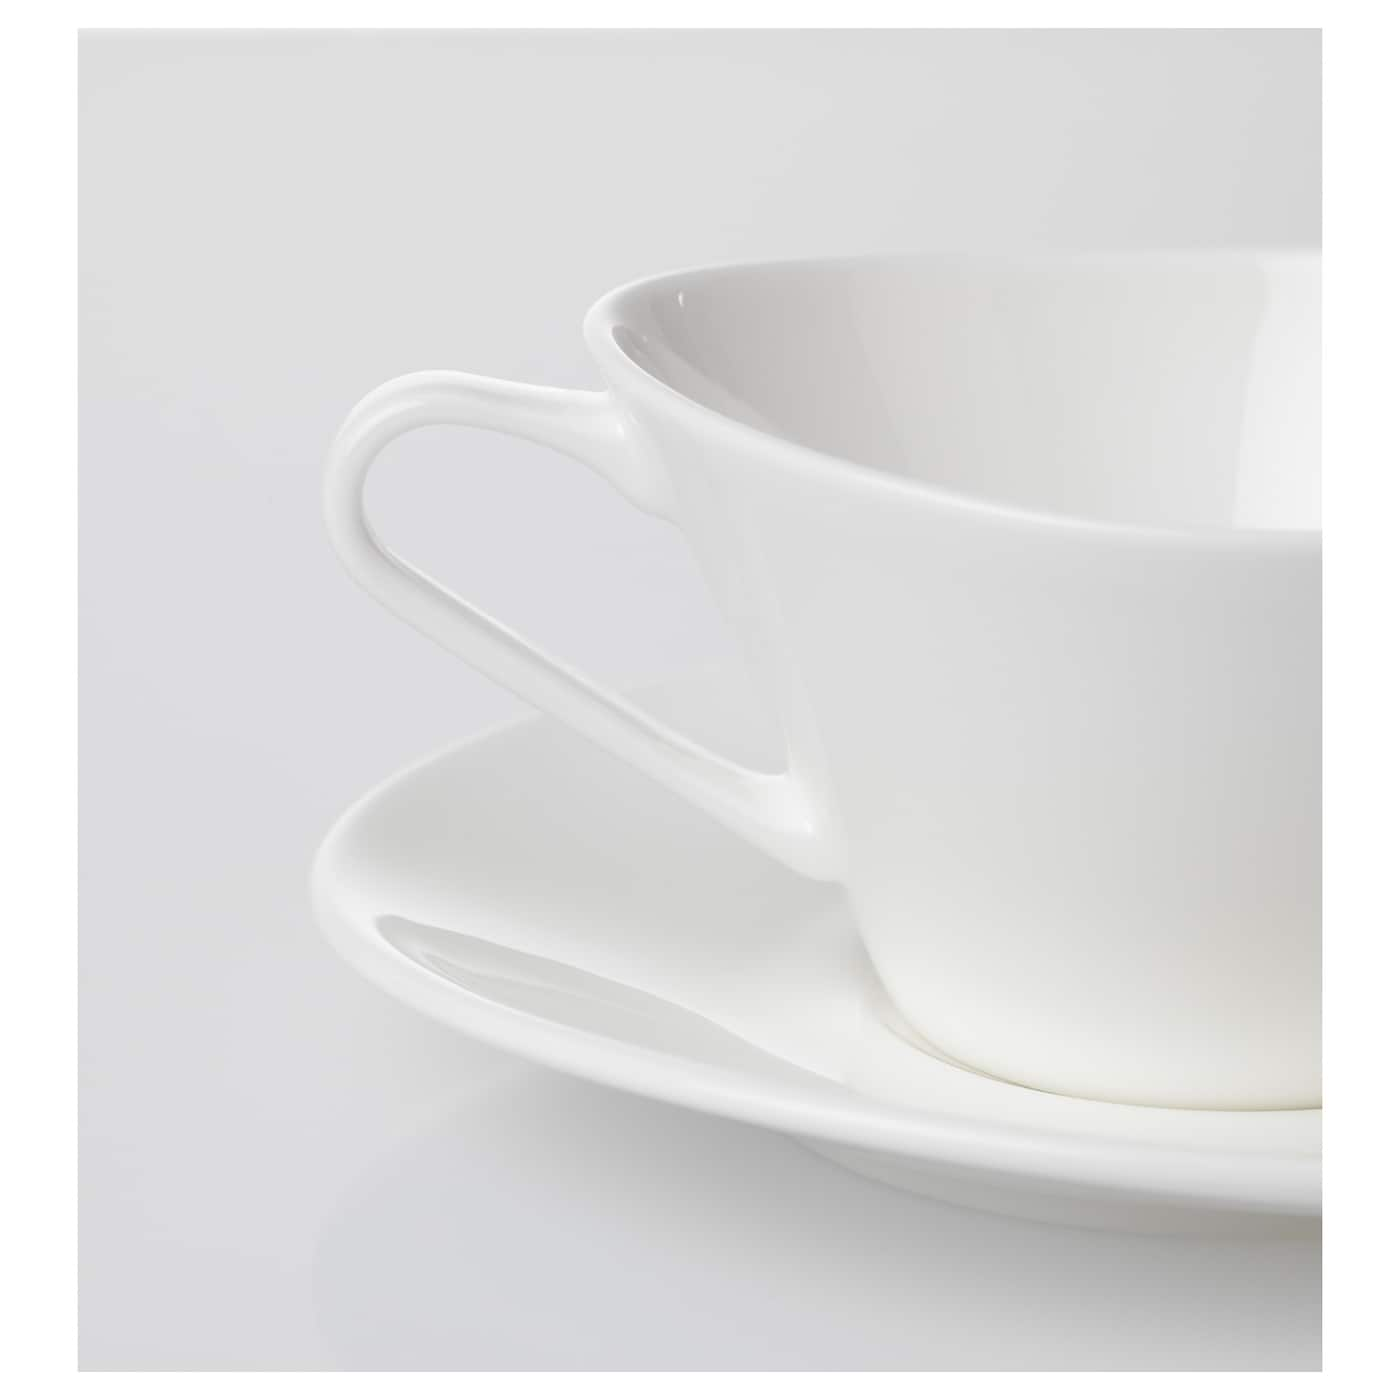 IKEA SKYN cup with saucer